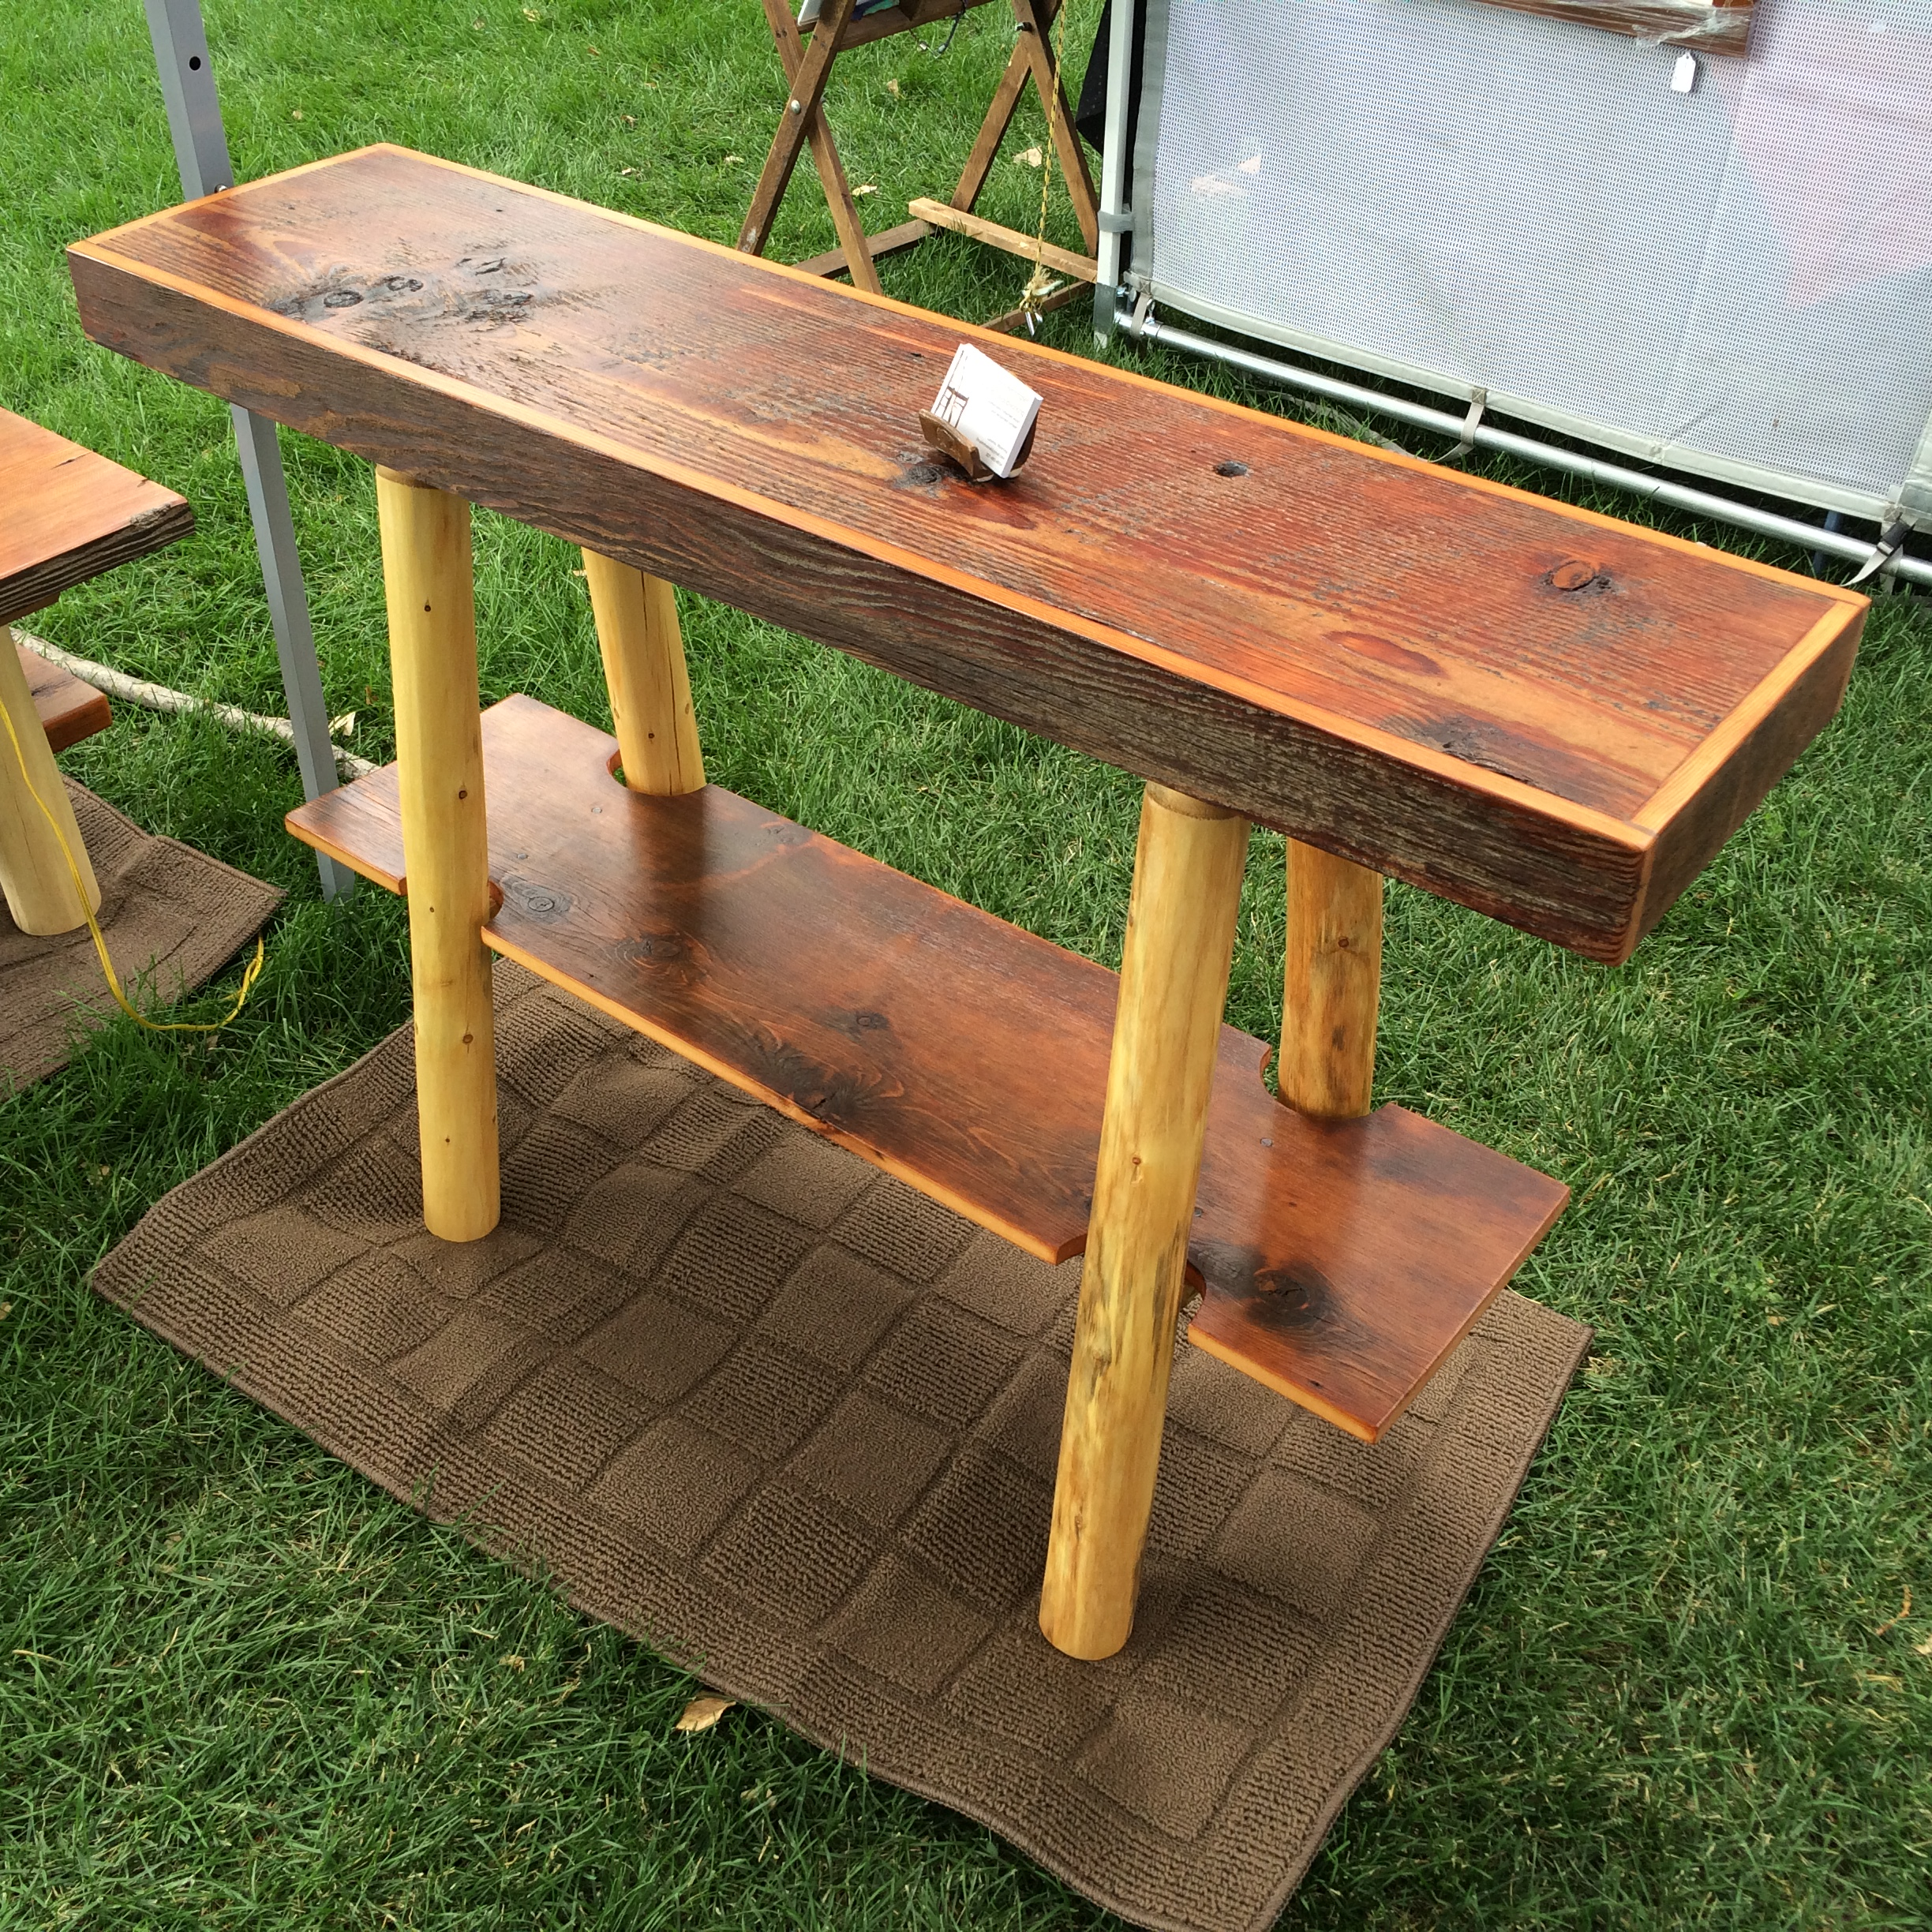 Sofa Table- Iowa Barnwood and Wyoming Lodgepole Pine Legs